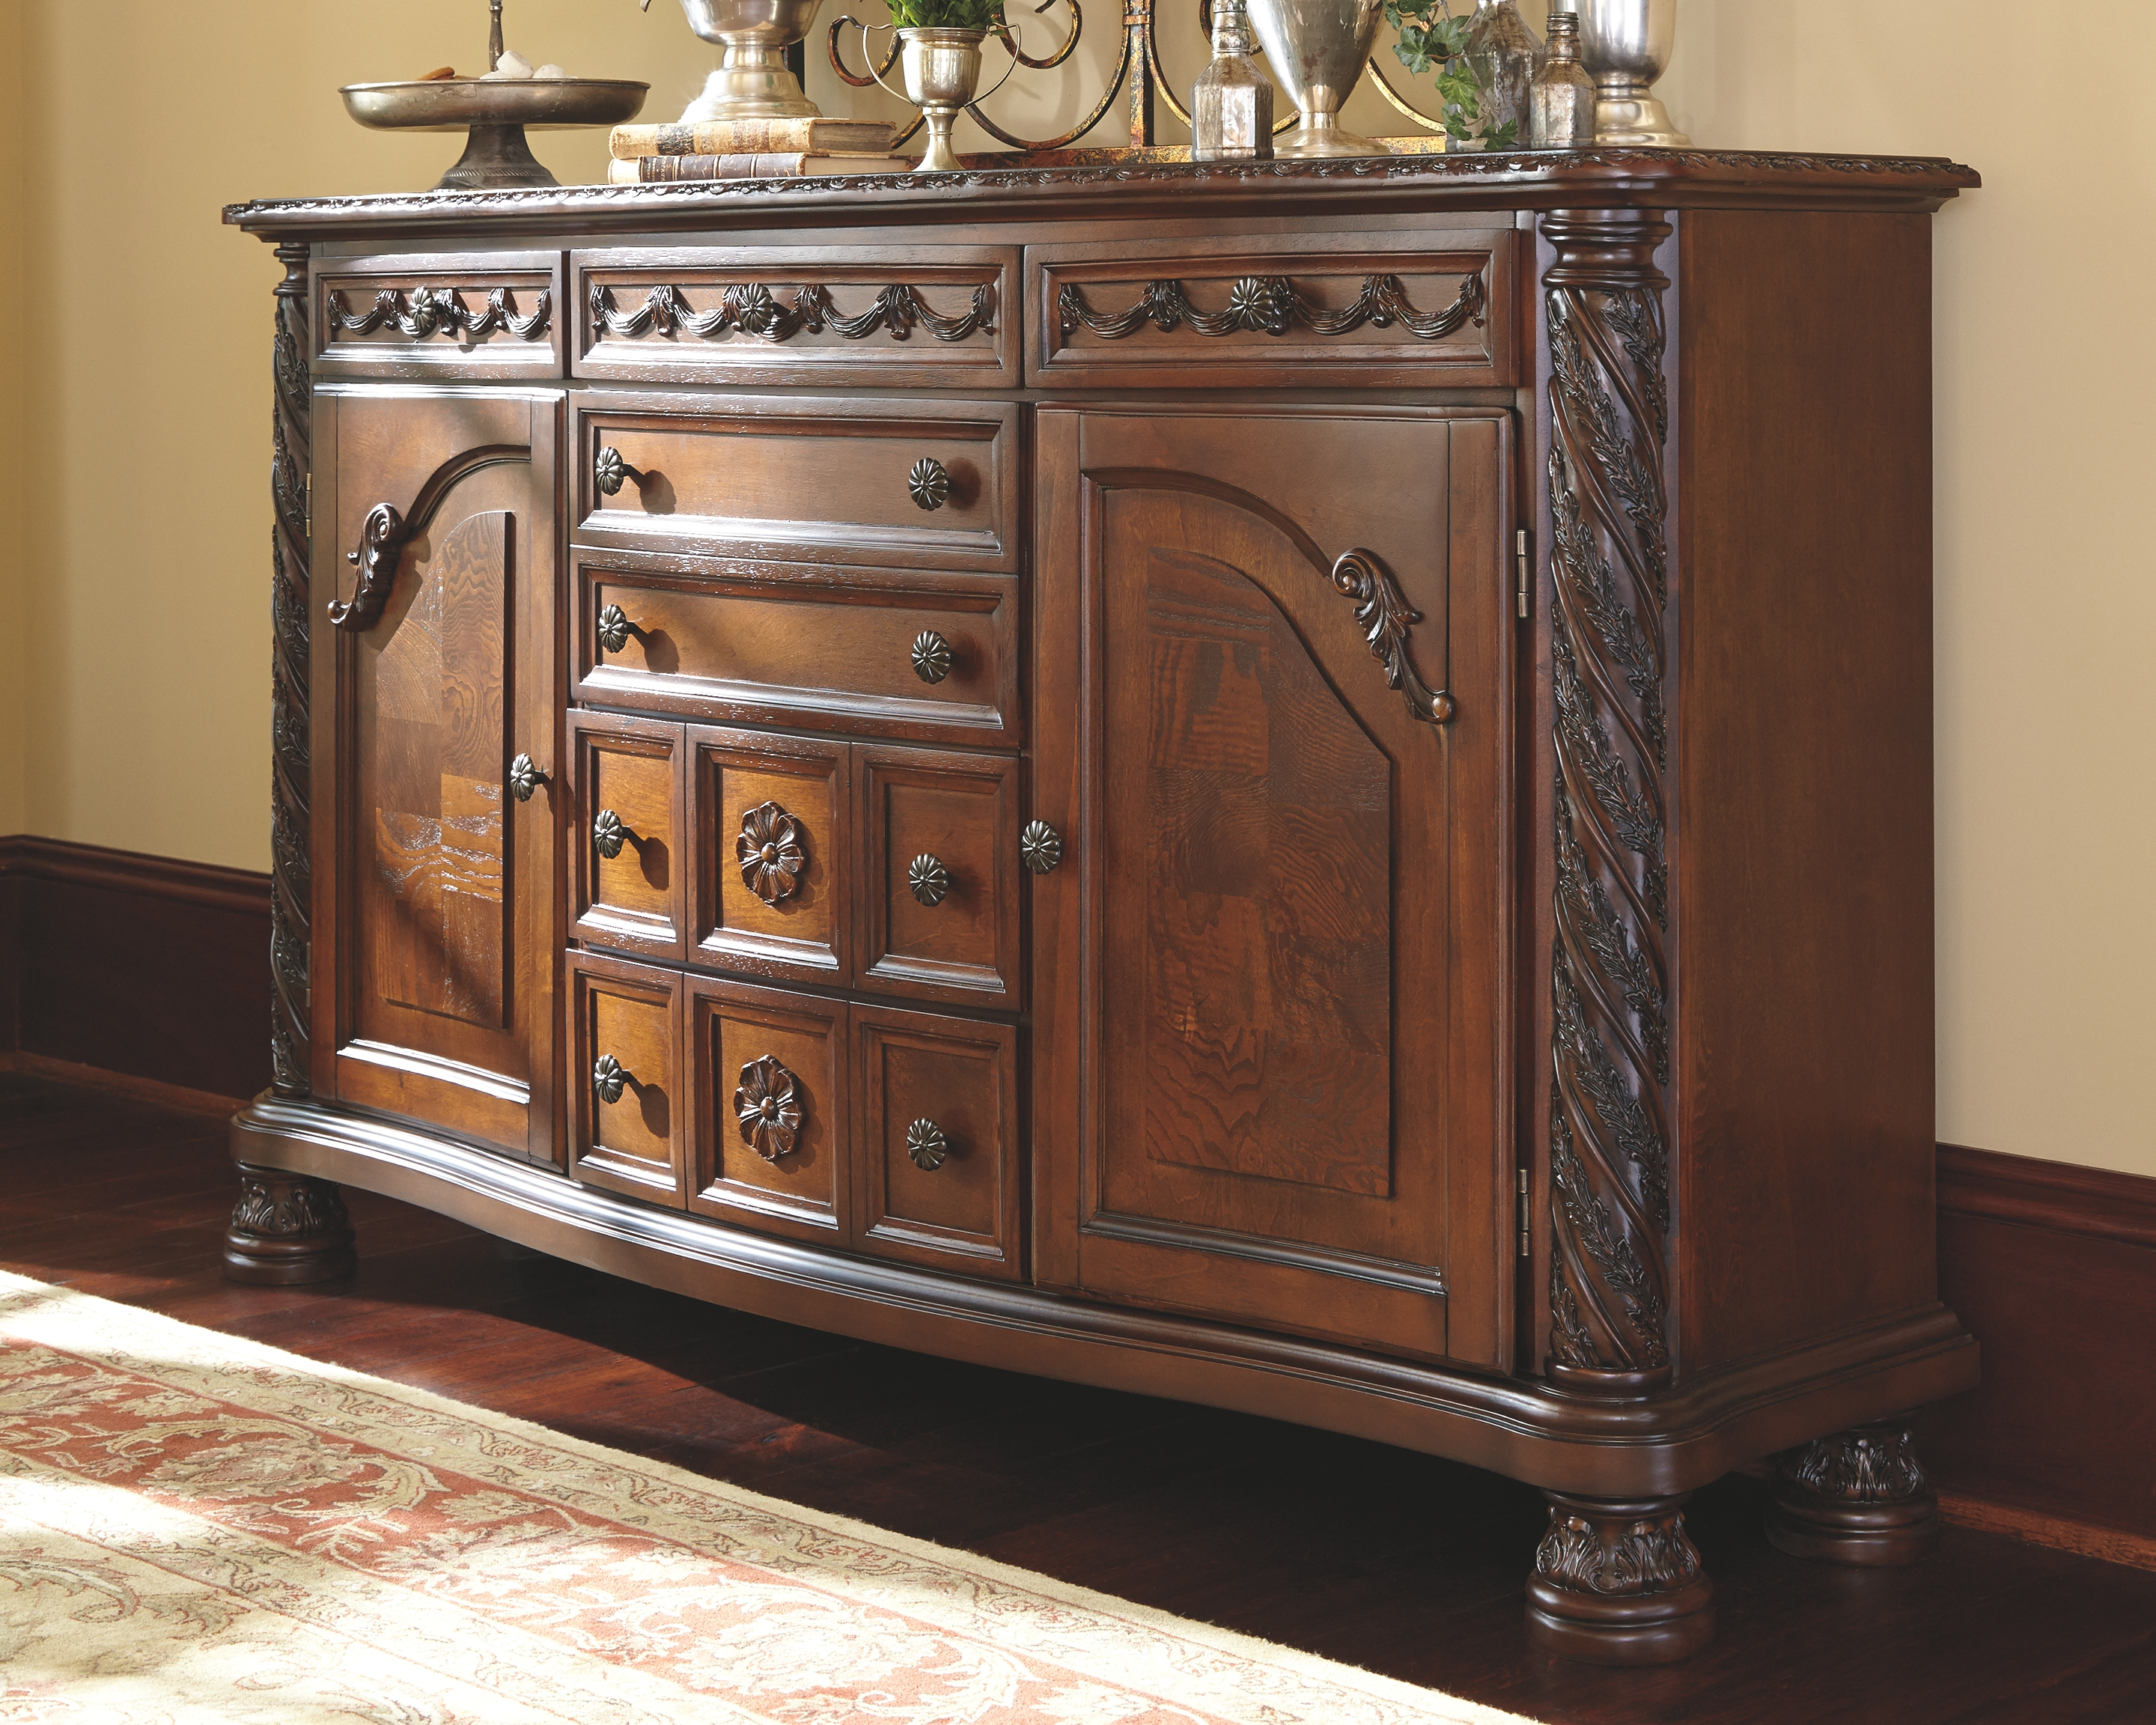 Most Recent Wildon Home North Shore Dining Room Sideboard – Walmart Inside Sideboards By Wildon Home (View 7 of 20)